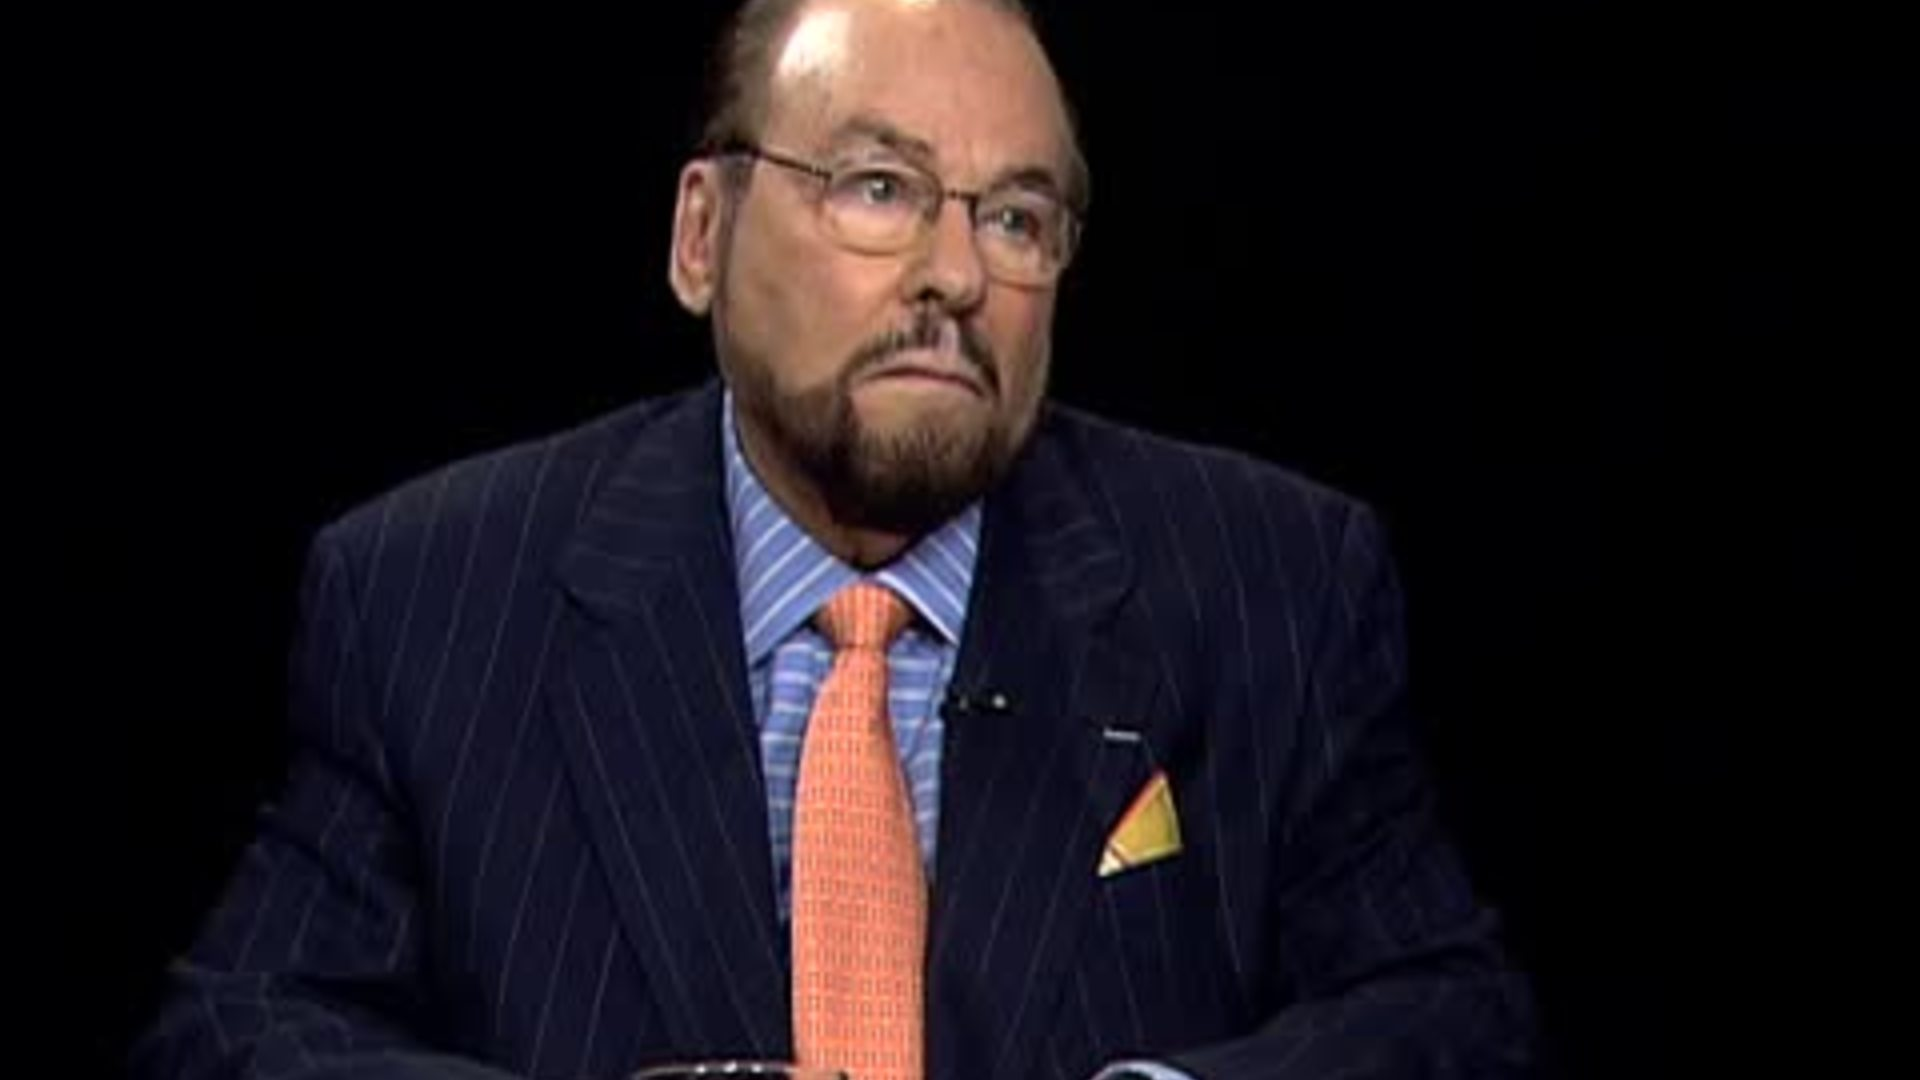 james lipton showjames lipton age, james lipton 90, james lipton inside the actors studio, james lipton, james lipton questions, james lipton will ferrell, james lipton questionnaire, james lipton wiki, james lipton 2015, james lipton family guy, james lipton snl, james lipton robin williams, james lipton simpsons, james lipton dave chappelle, james lipton actors studio questions, james lipton an exaltation of larks, james lipton show, james lipton pimp, james lipton net worth, james lipton actors studio